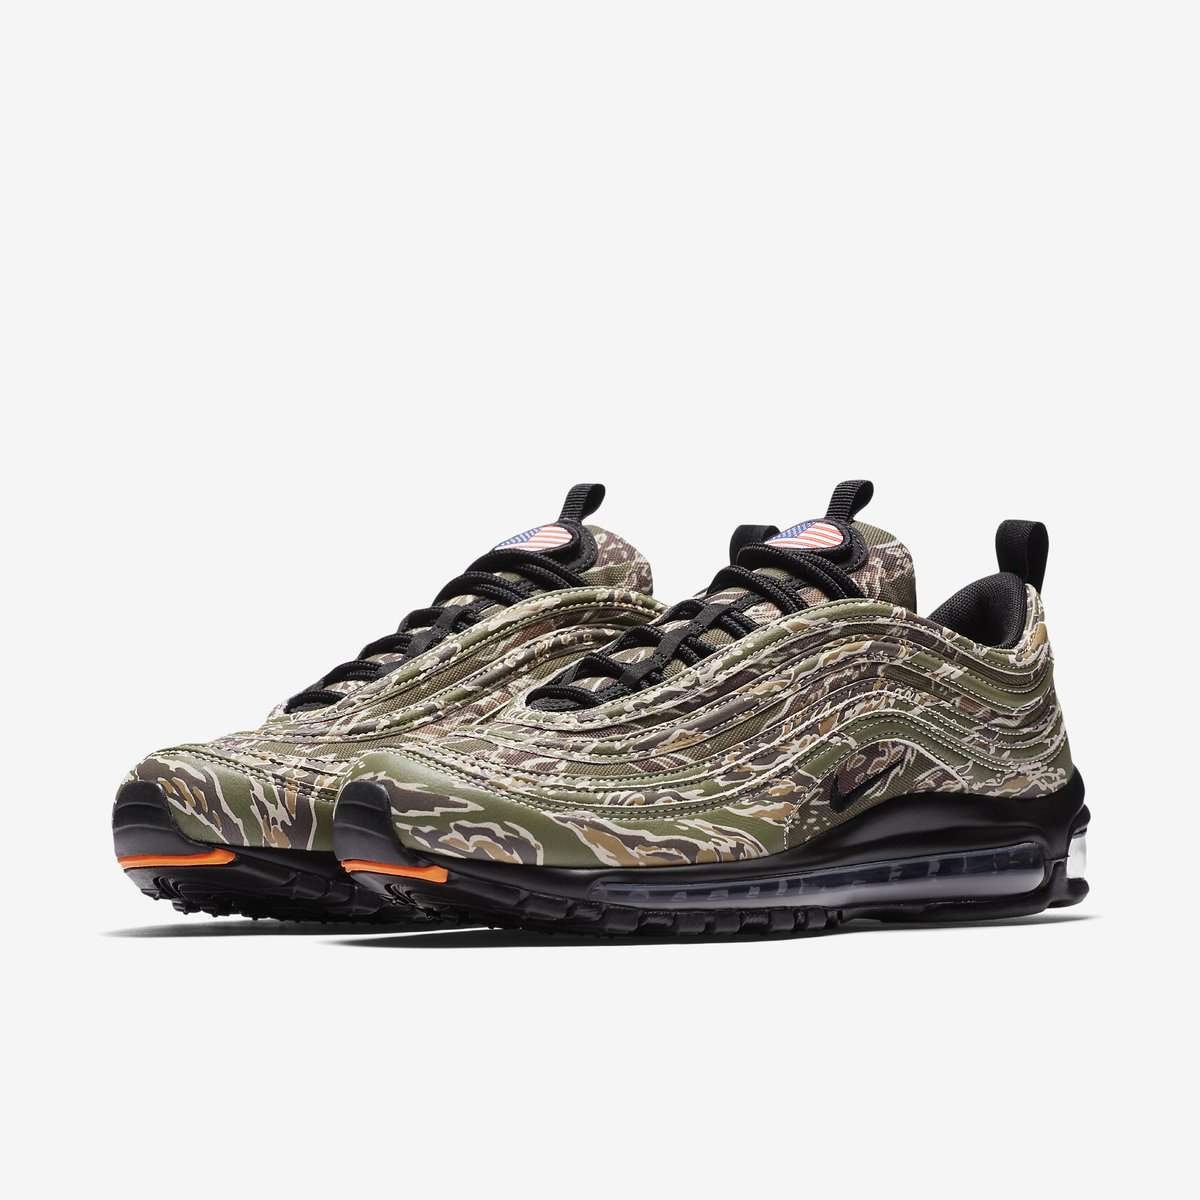 Air Max 180 Pays Camouflage Iphone